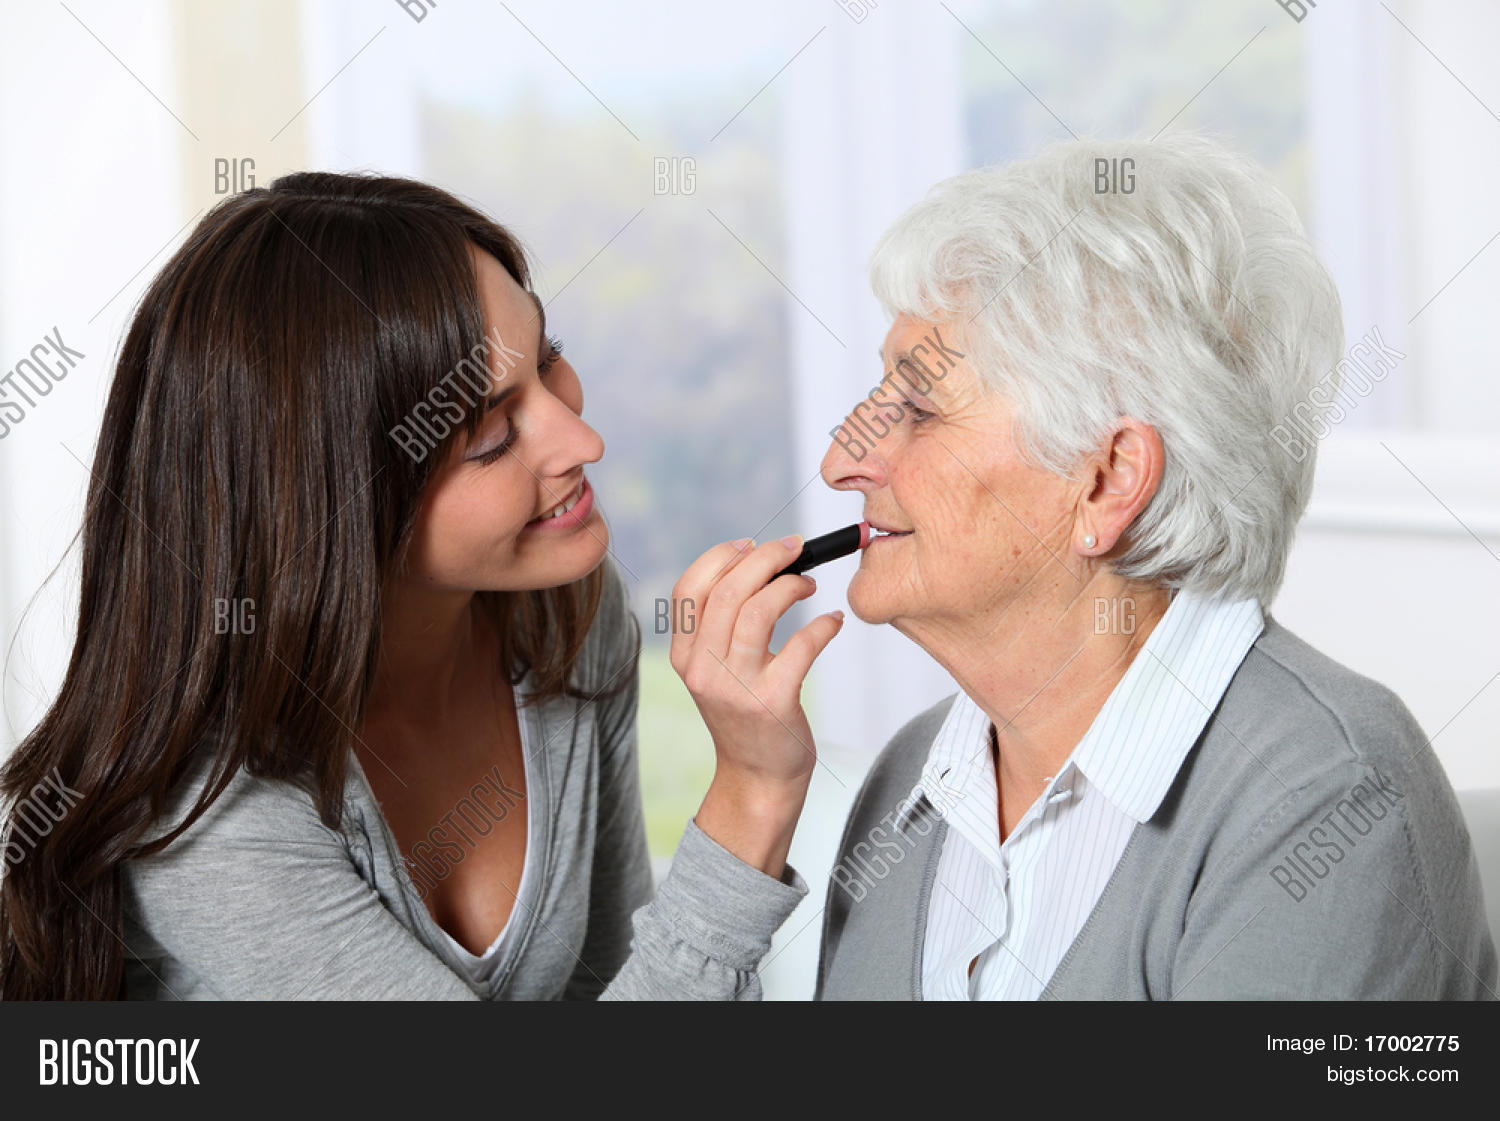 young woman and old woman